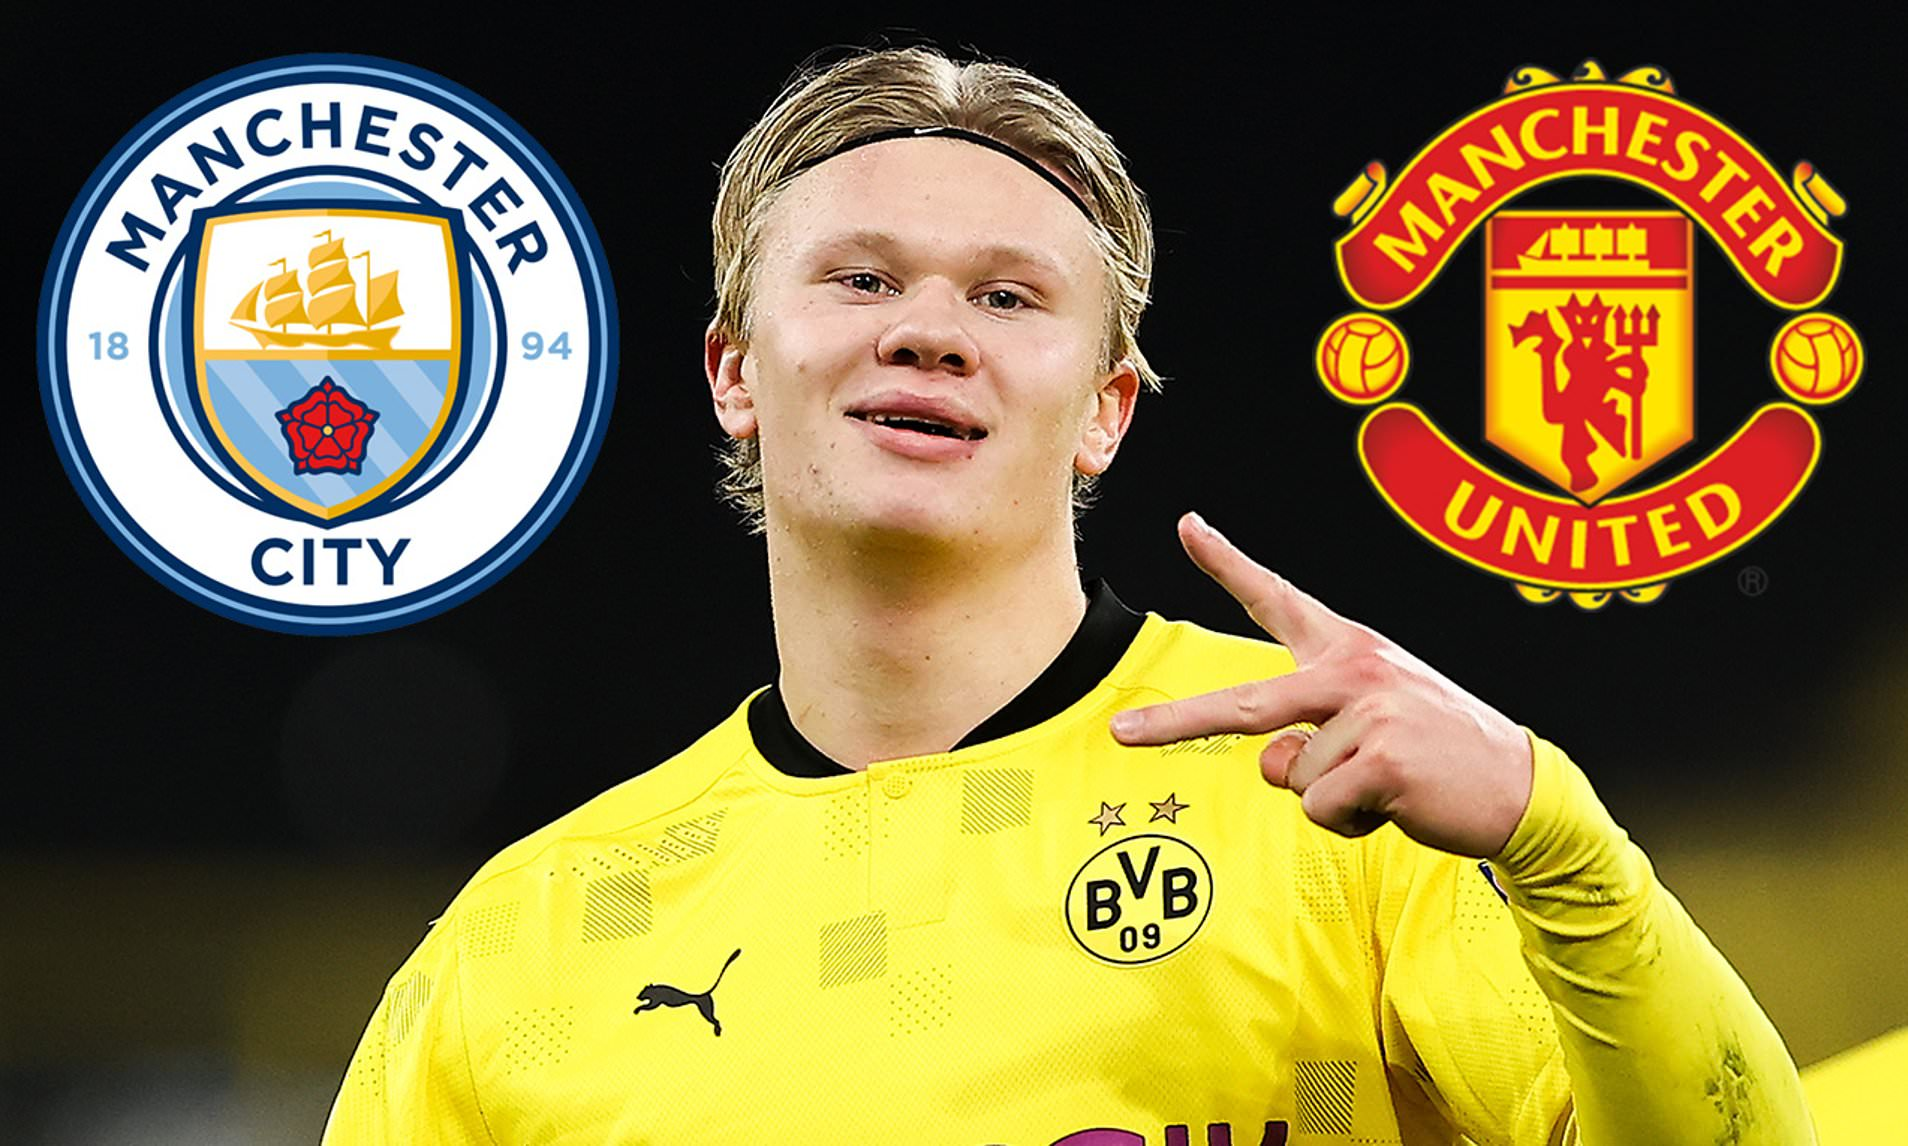 Manchester rivals, United and City are both reportedly interested in signing onfire Borussia Dortmund forward, Erling Haaland, who has started 26 games this season, netting 33 goals.